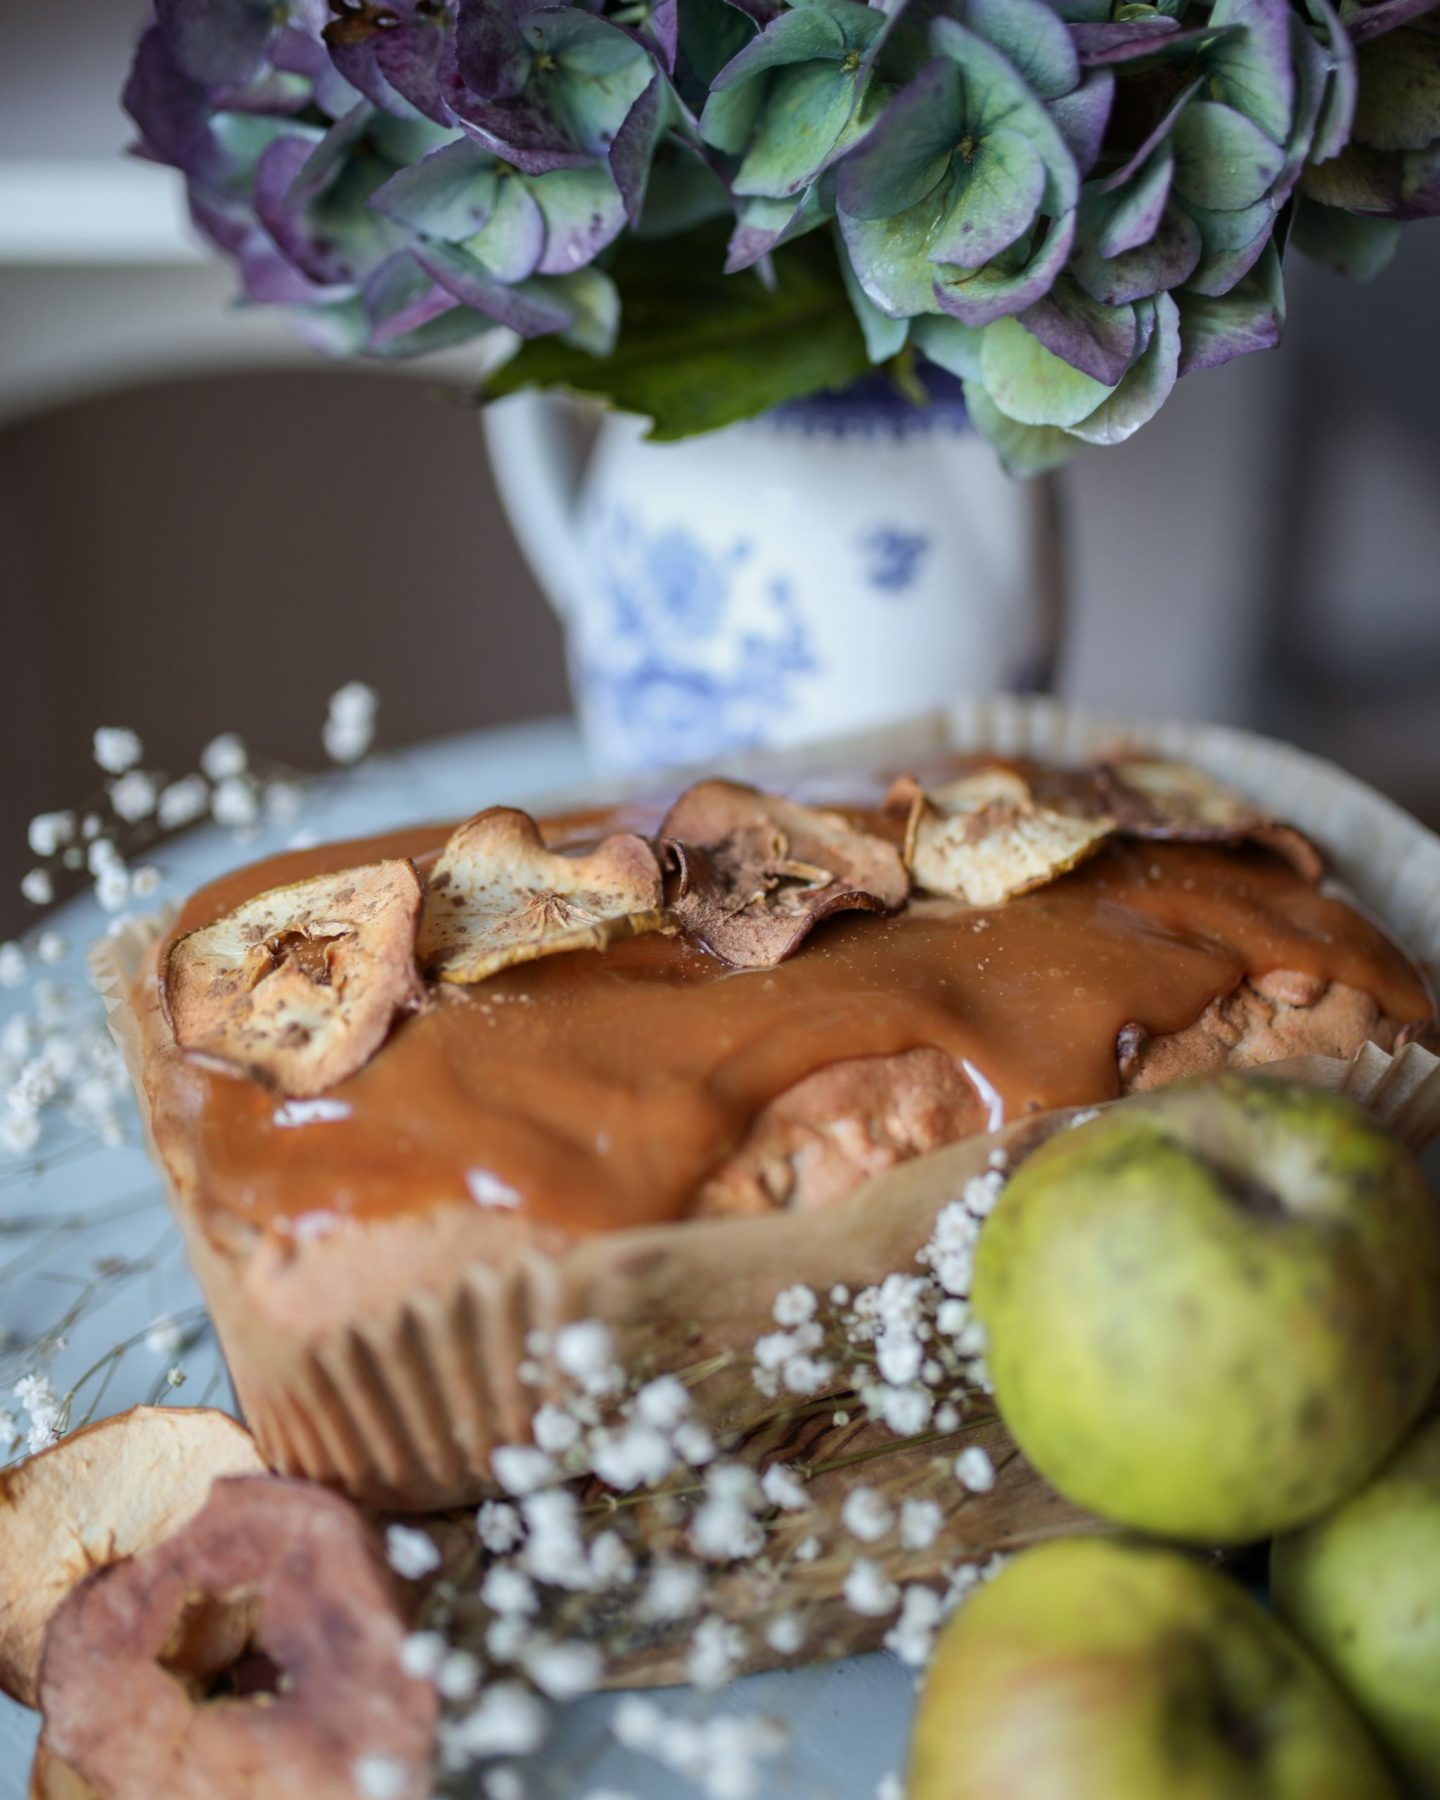 Apple Cinnamon Loaf cake with caramel icing and apple crisps, Katie Heath, KALANCHOE